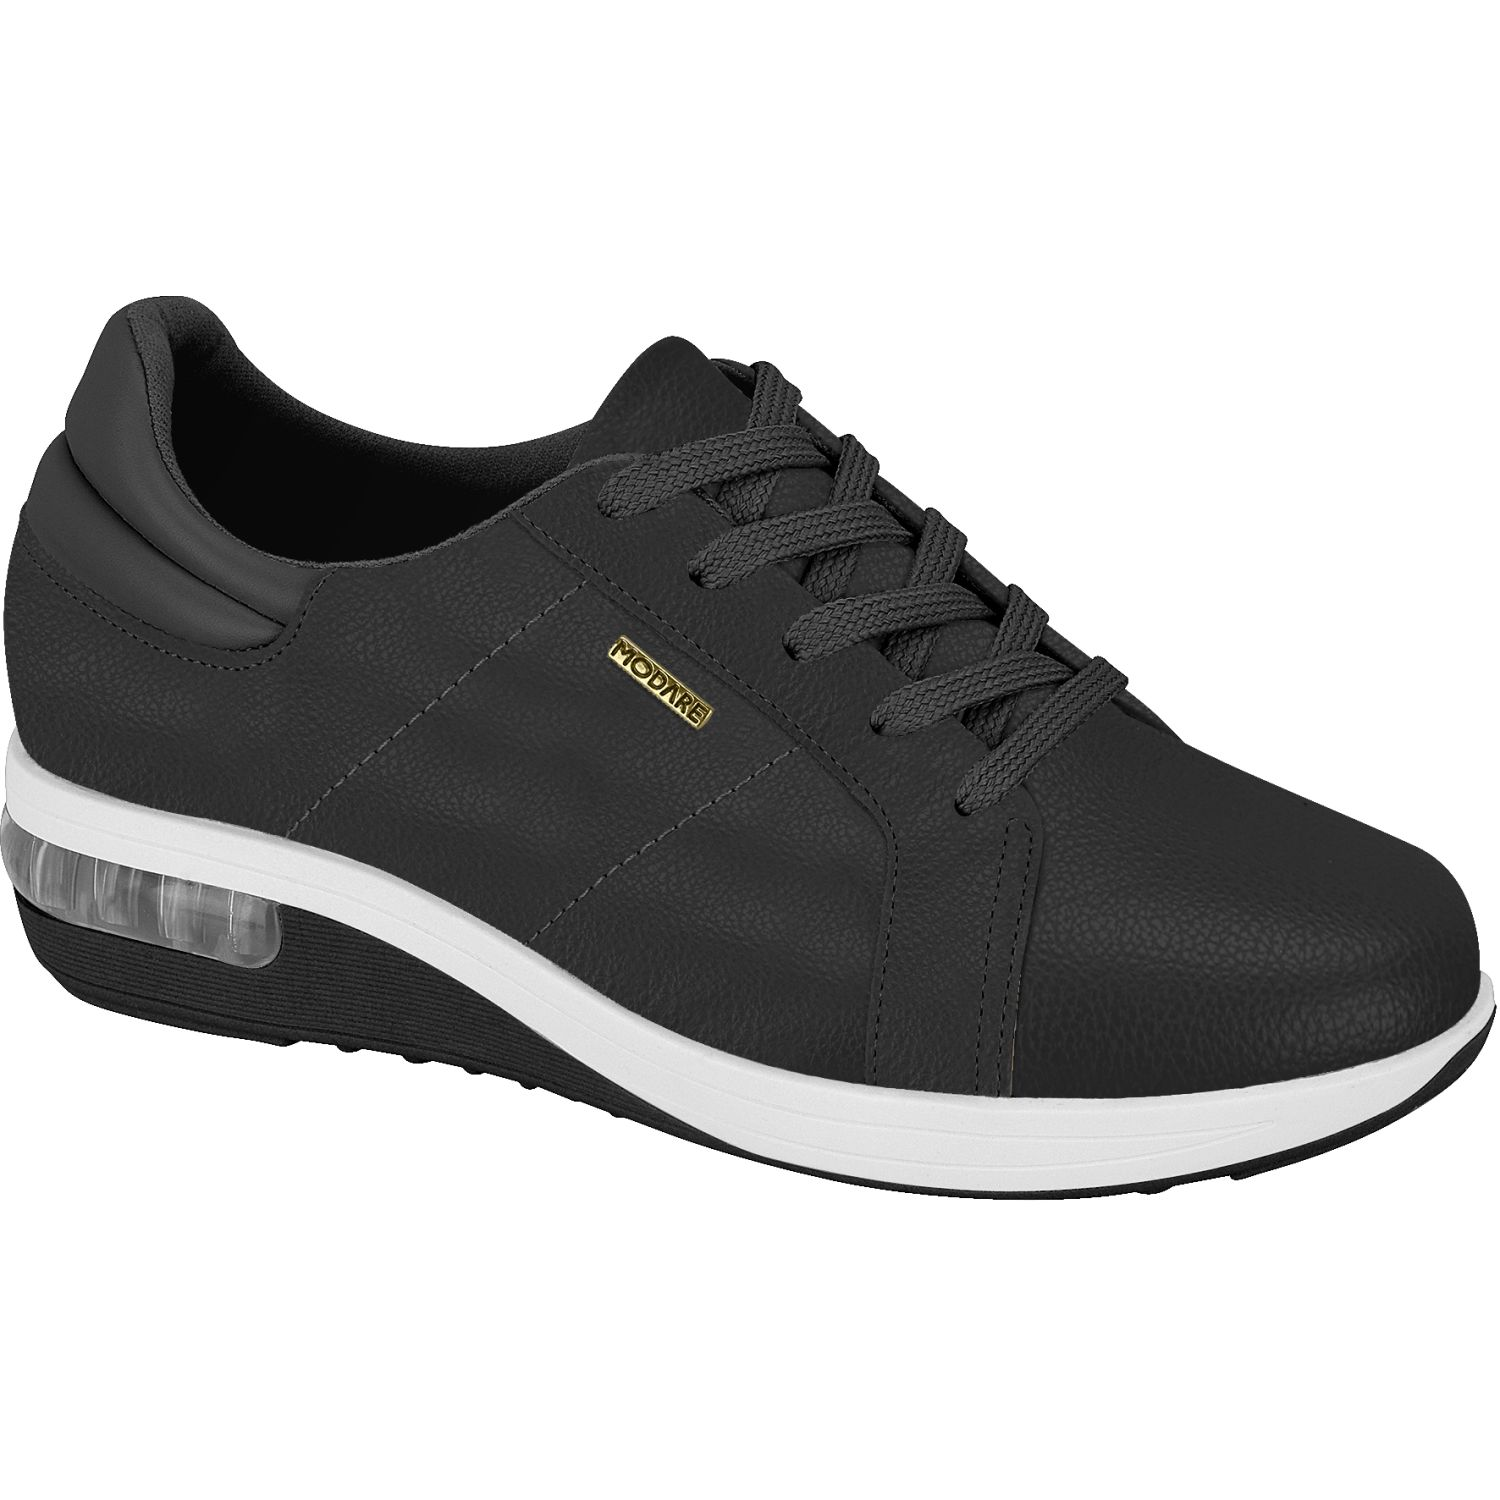 MODARE 7320.228.18908-15745 Negro Zapatillas Fashion